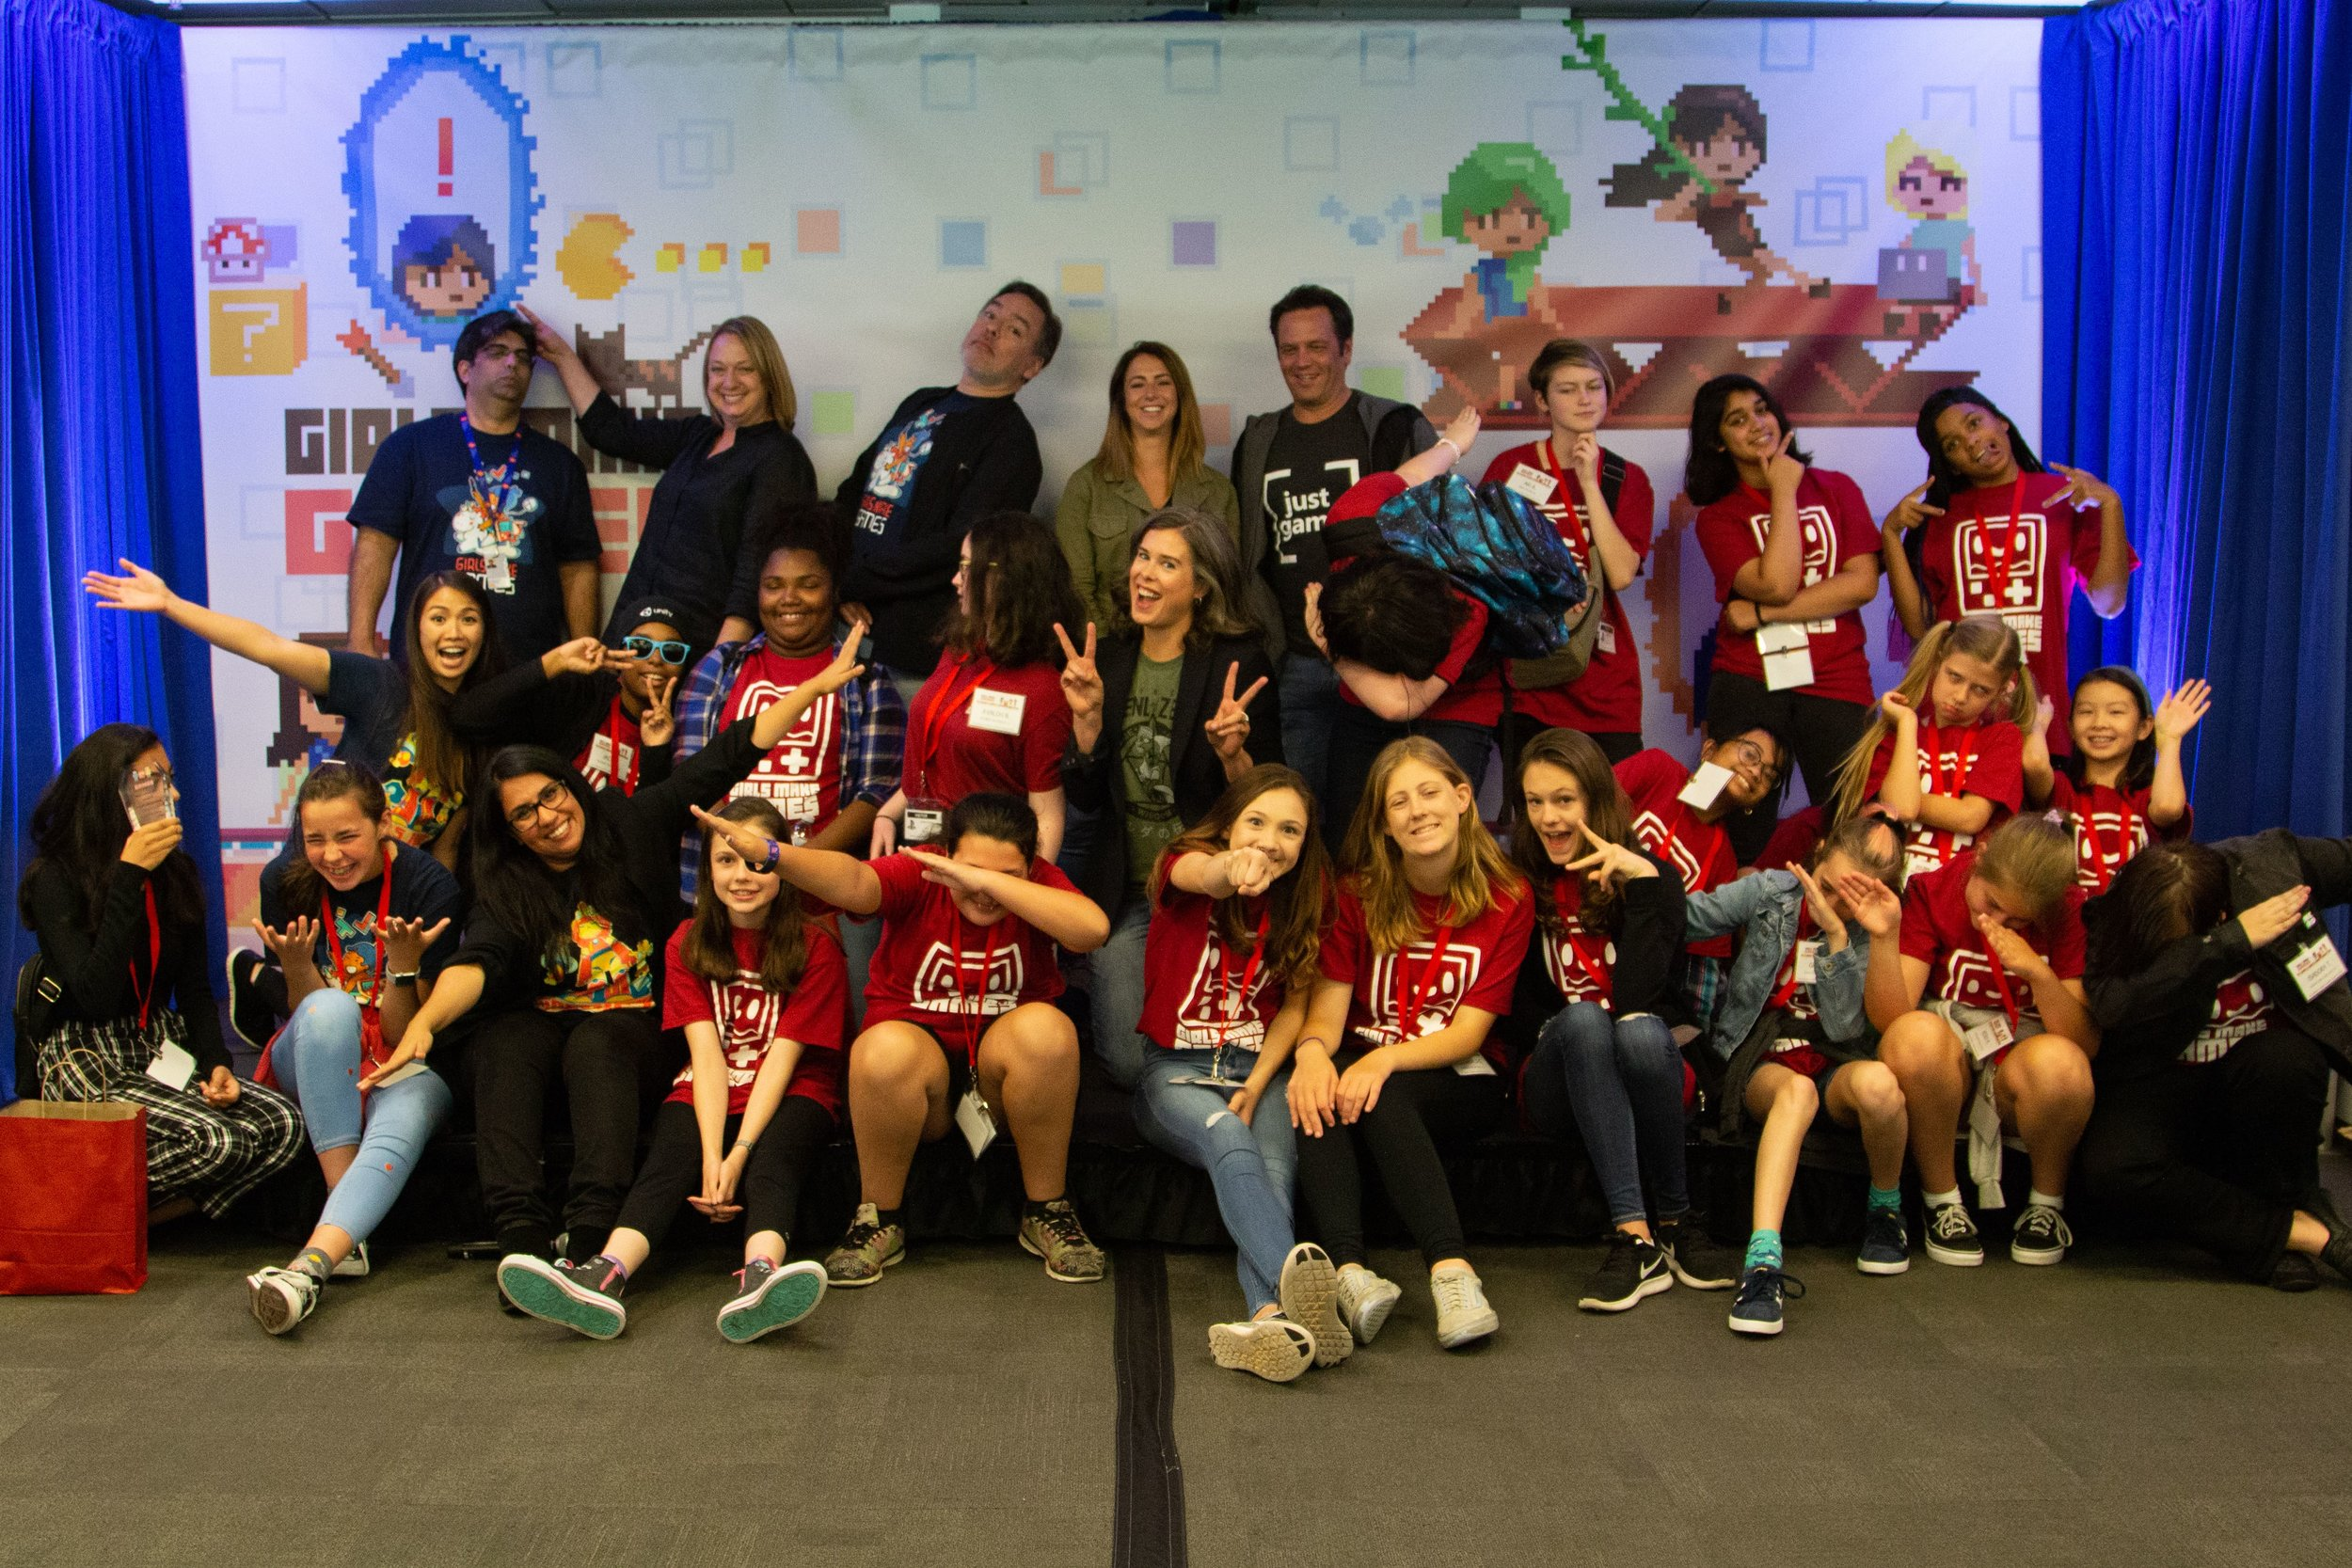 Judges Connie Booth, Phil Spencer, Shawn Layden, Anna Sweet and Devon Pritchard with the 5 finalist teams, GMG ambassadors and staff celebrating the end of 2018 Demo Day!